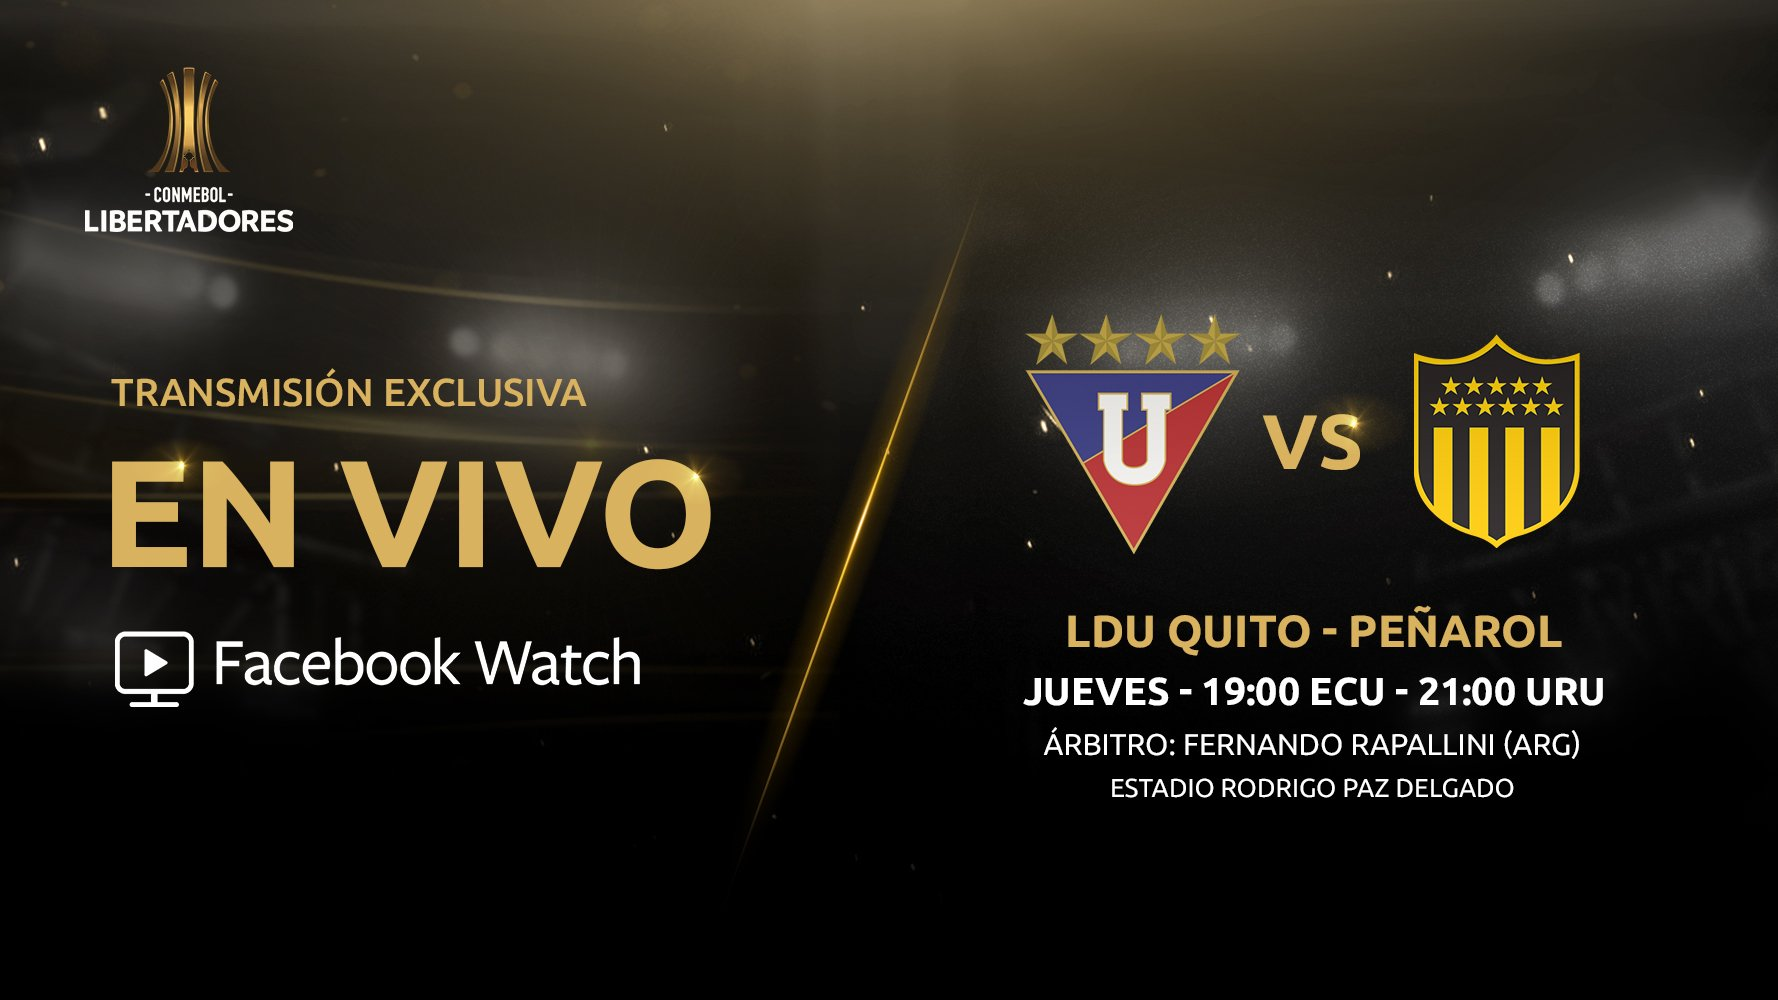 LIGA vs. Peñarol se verá en Facebook Watch